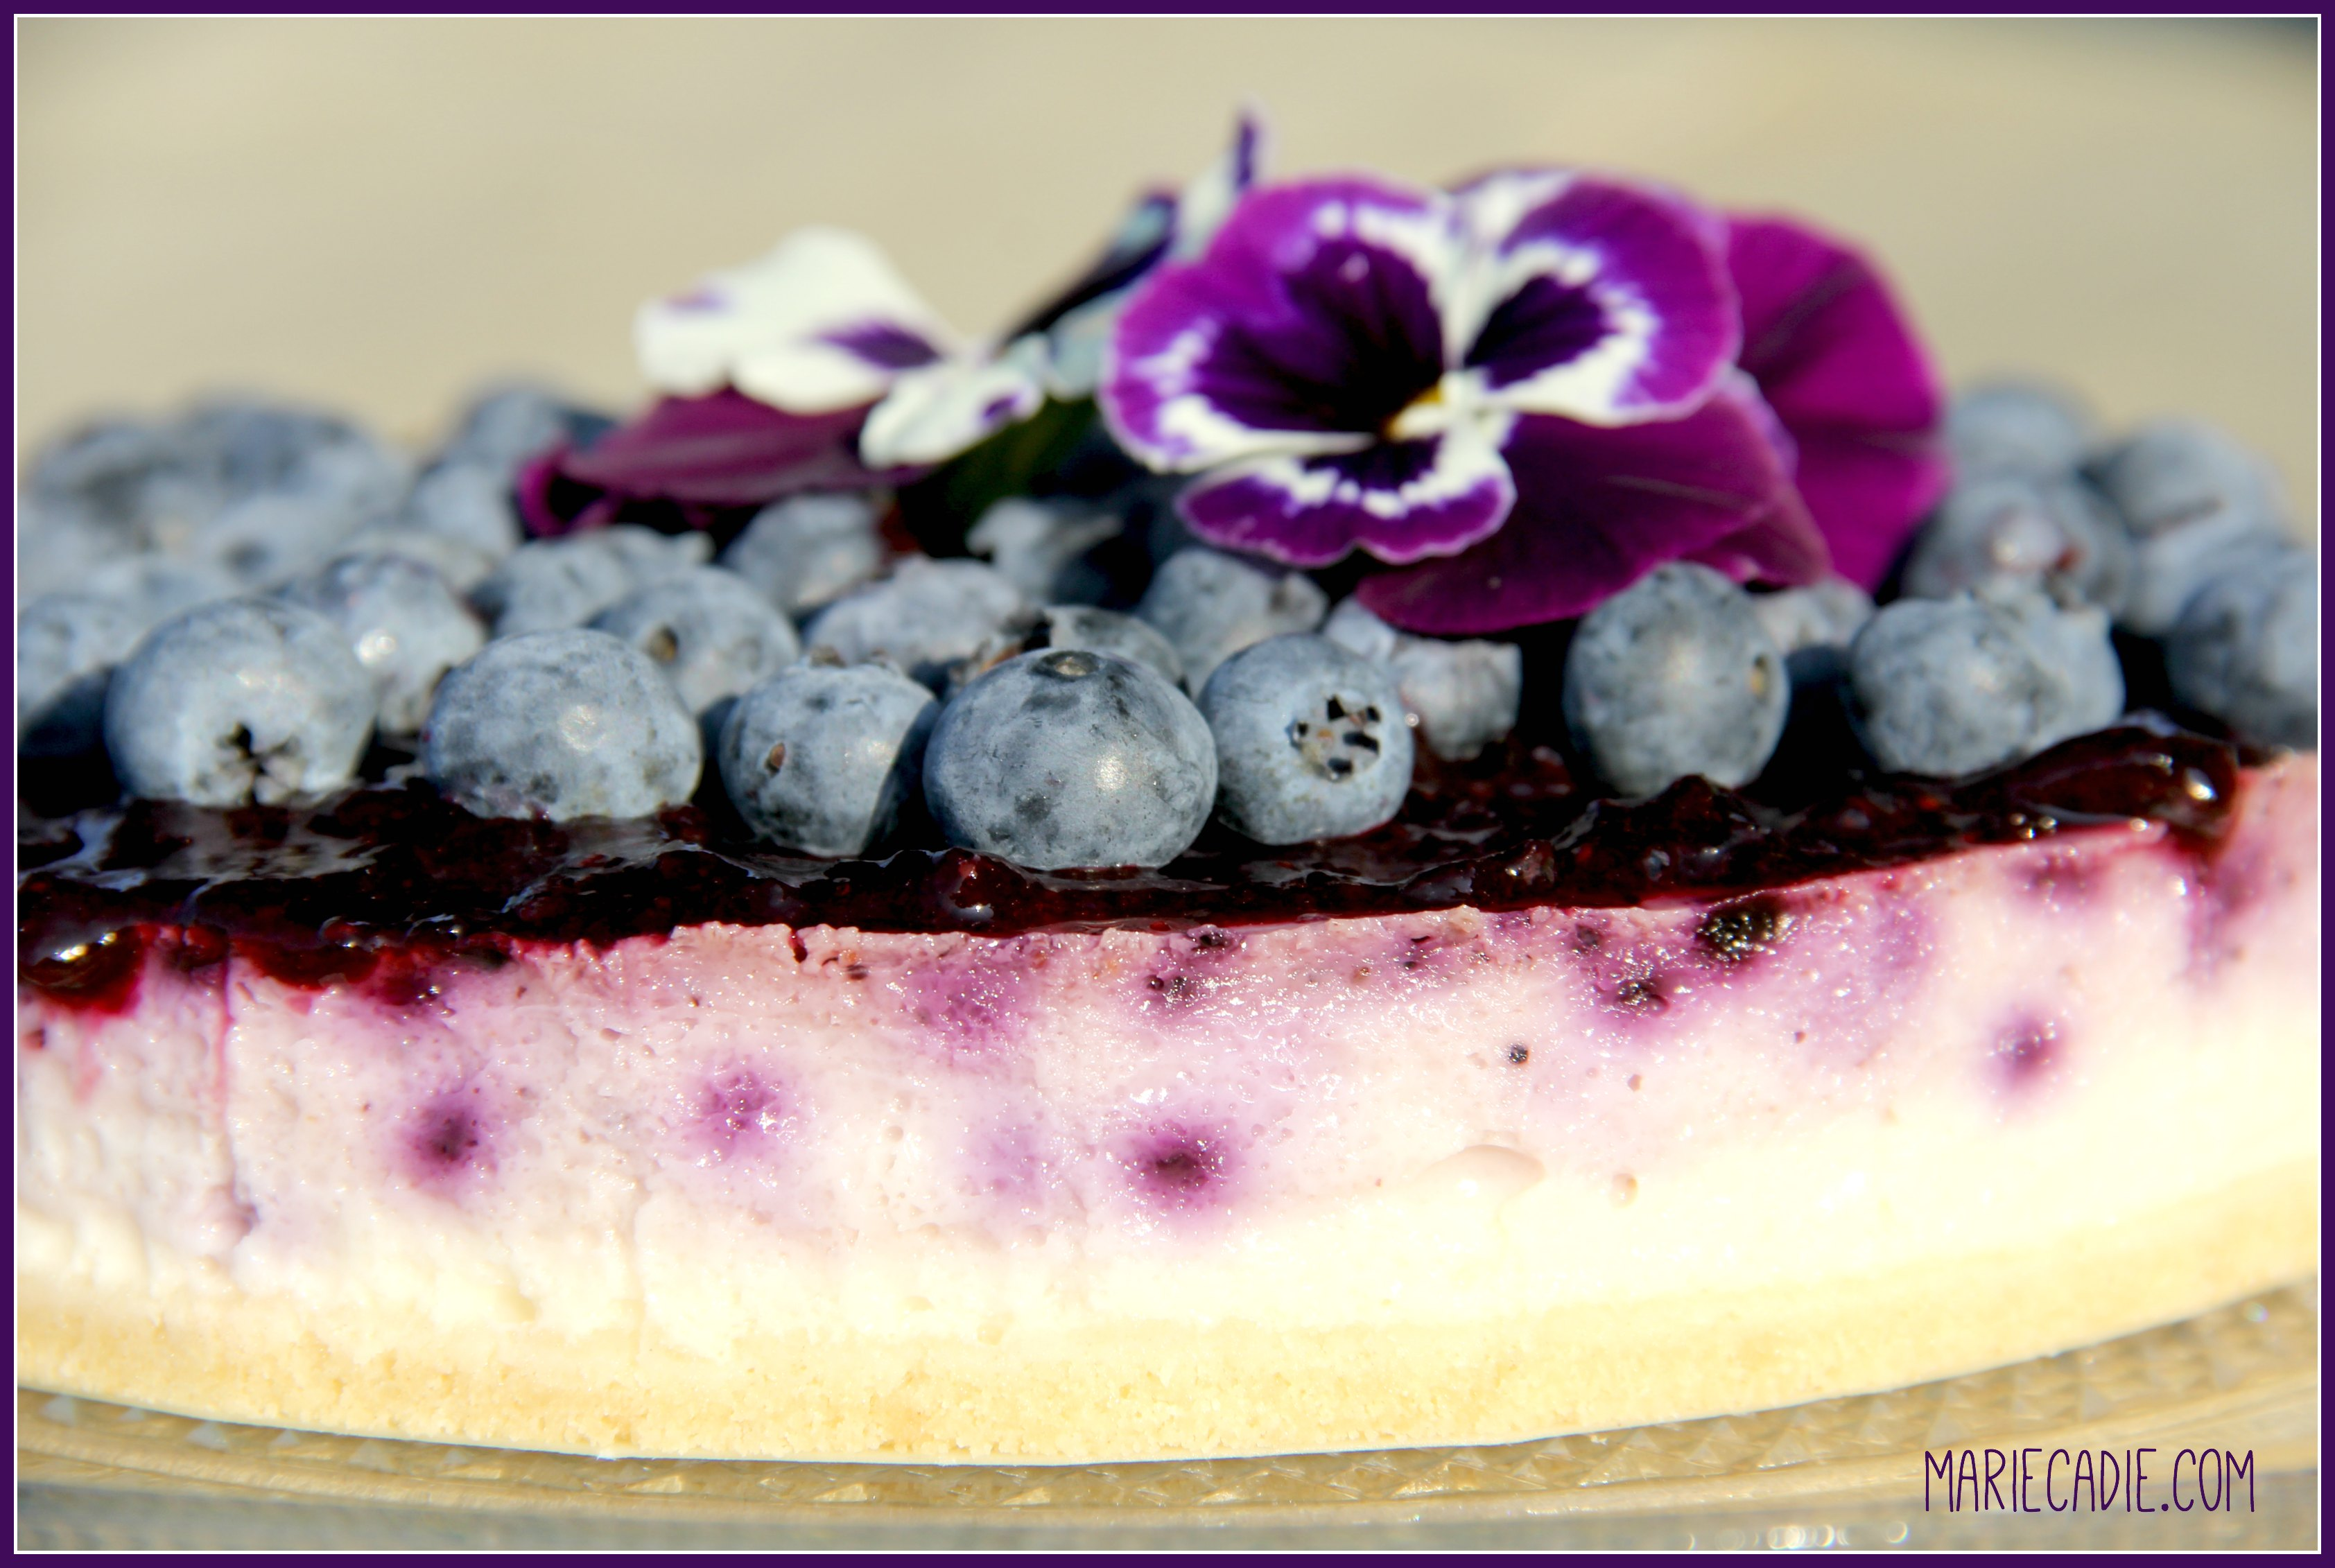 mariecadie-com-dr-oetker-blueberry-cheesecake_2